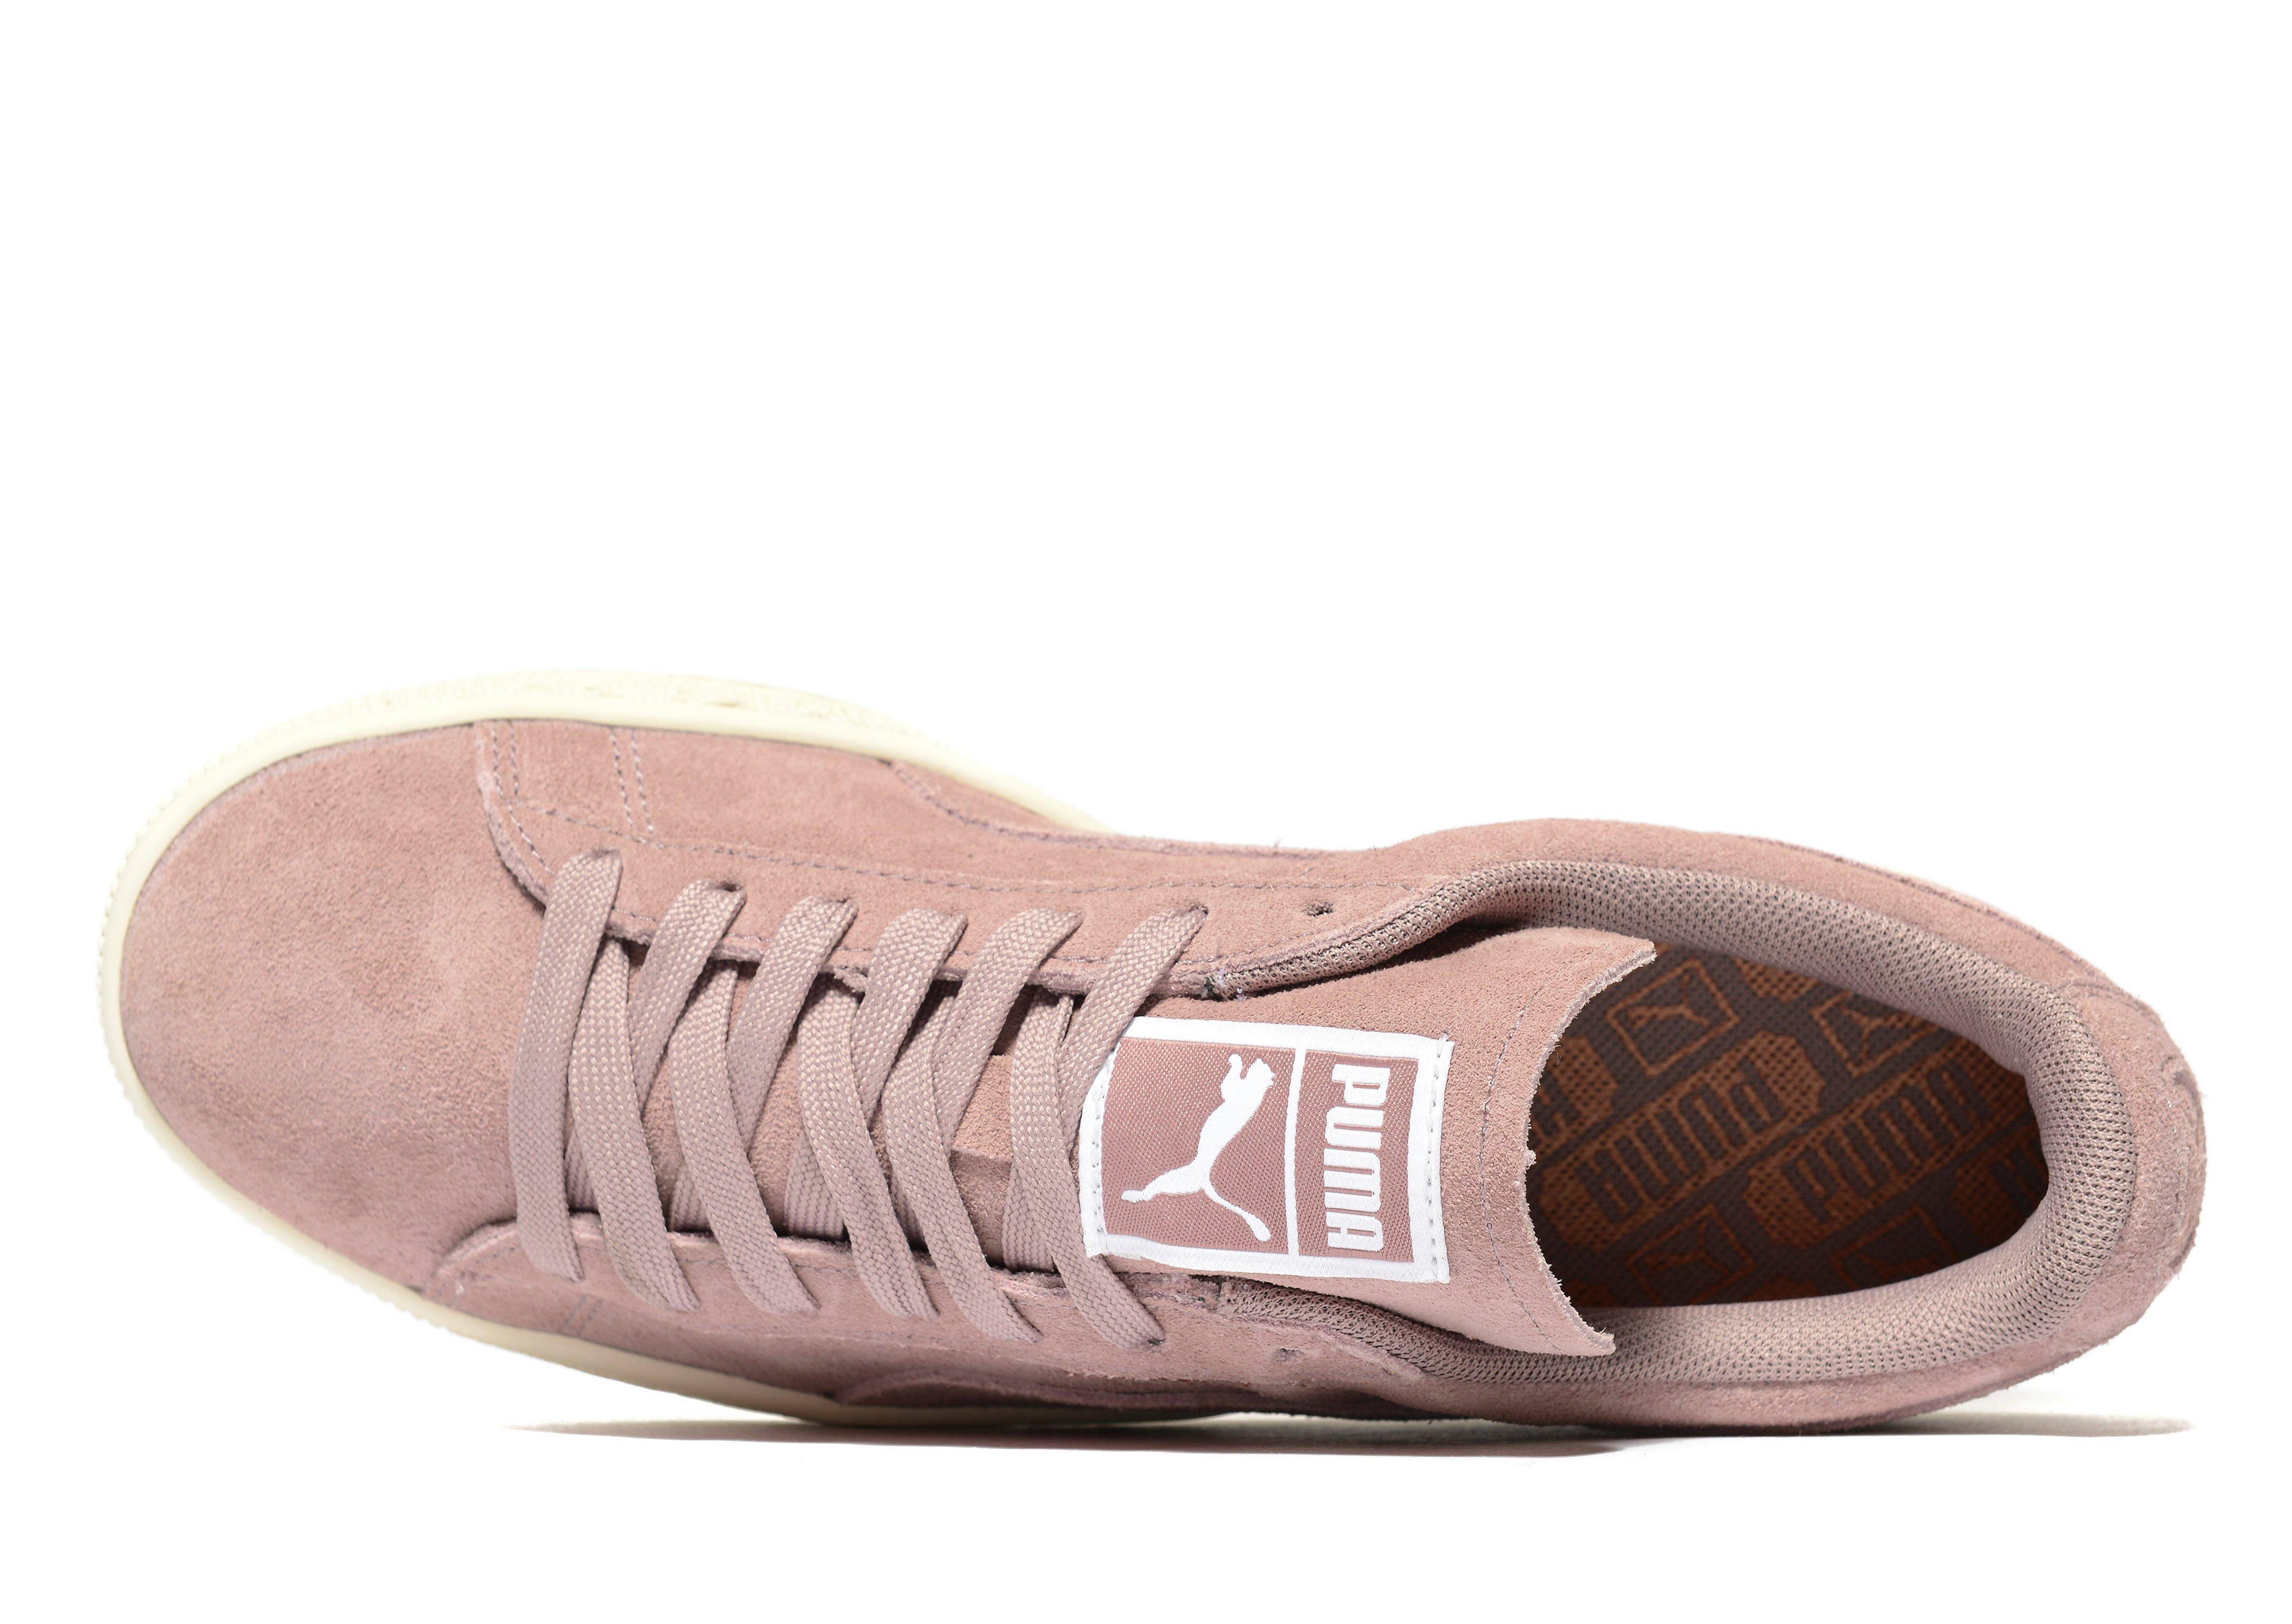 Lyst - Puma Basket Platform Core Trainers in Pink 57149ab89